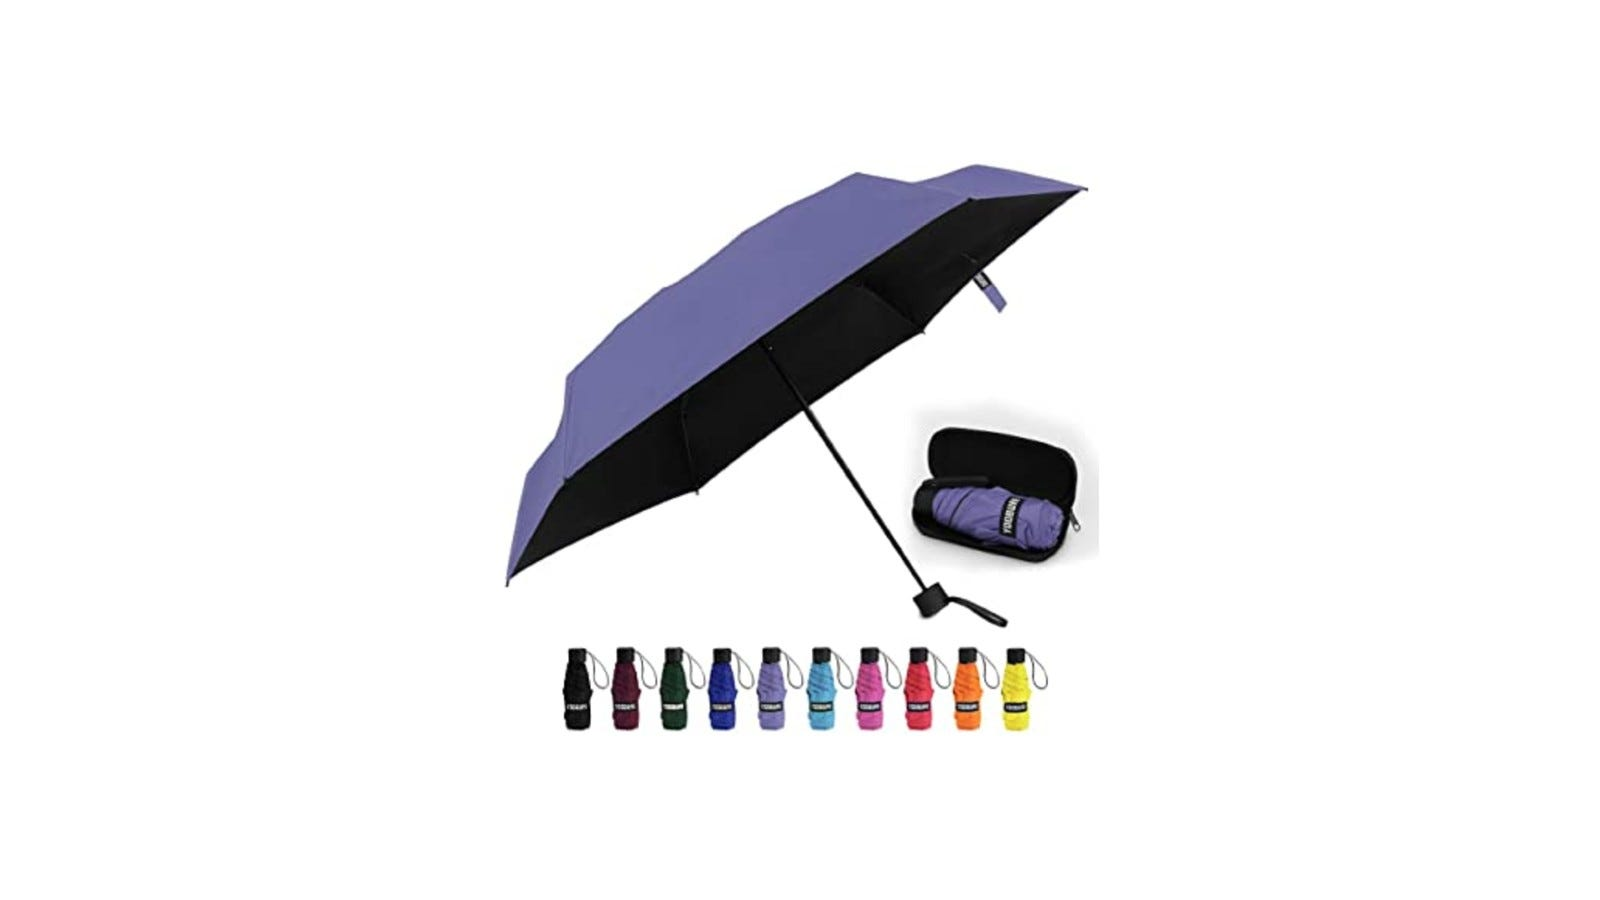 a navy mini umbrella shown with other color options below it